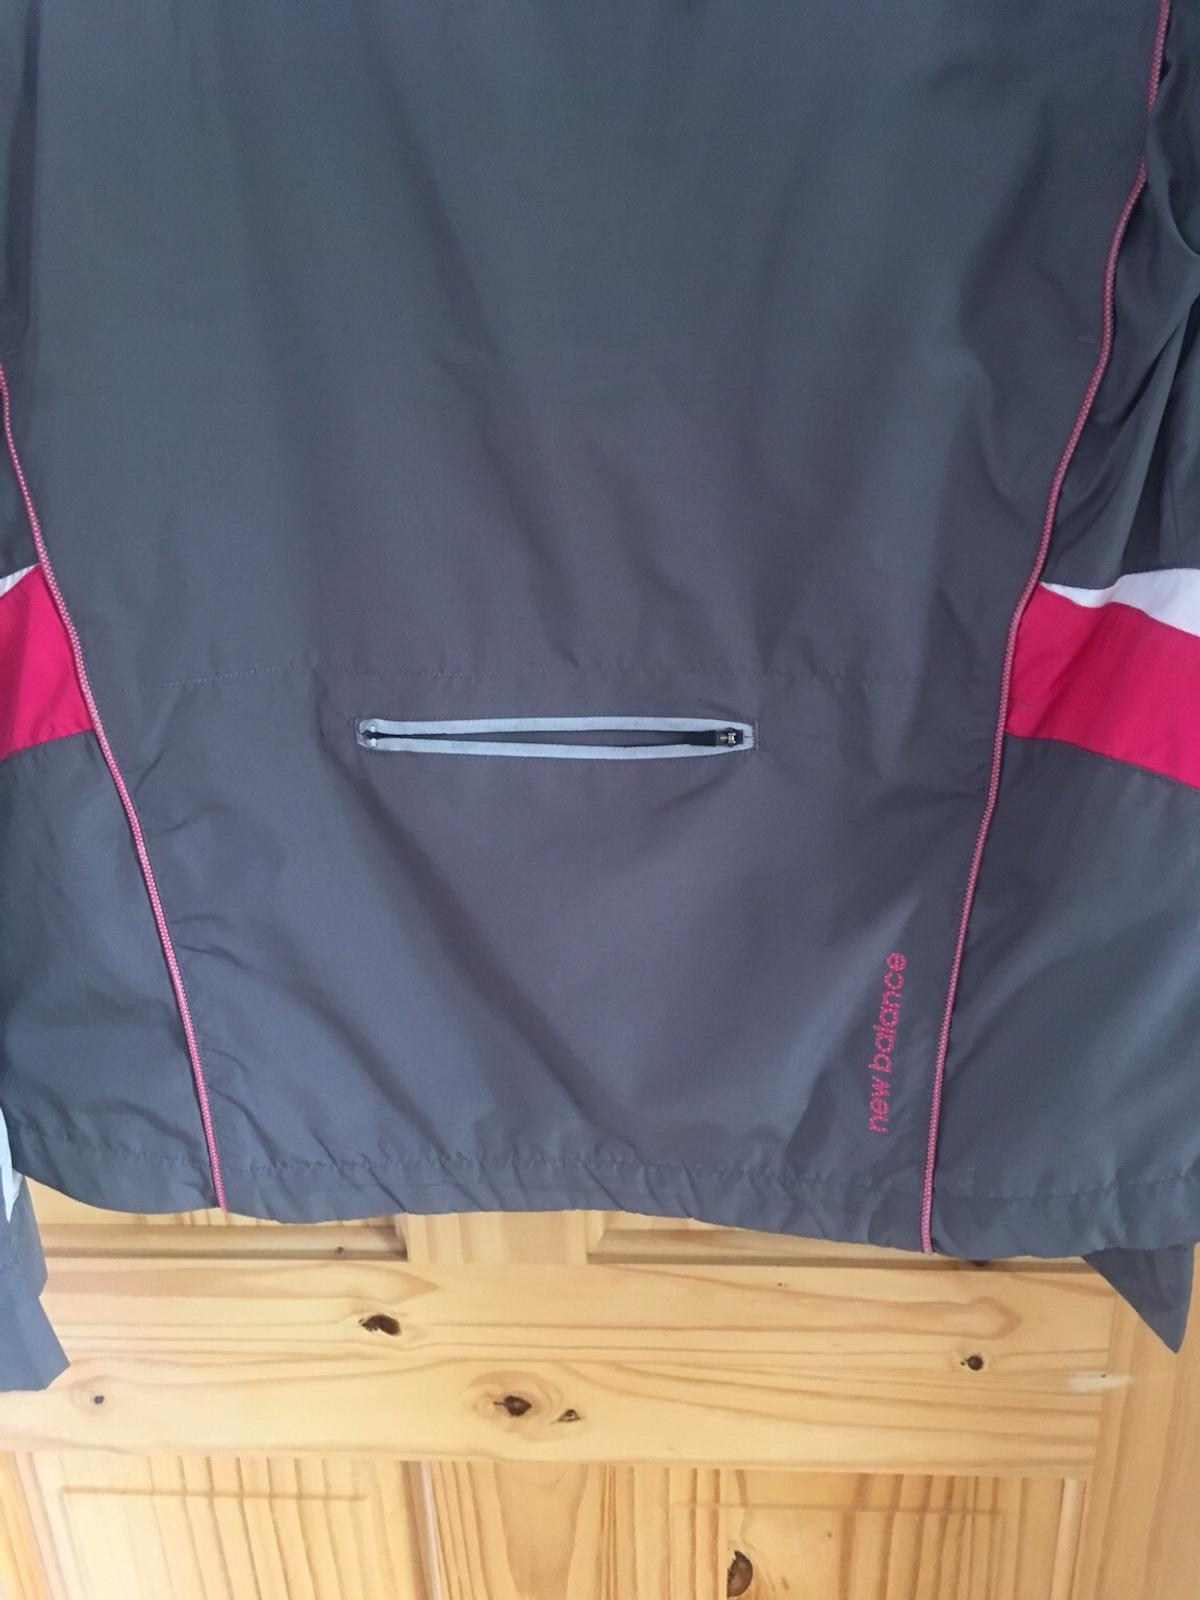 afc6fe627784f New balance running/sport jacket in B65 Sandwell for £5.00 for sale ...